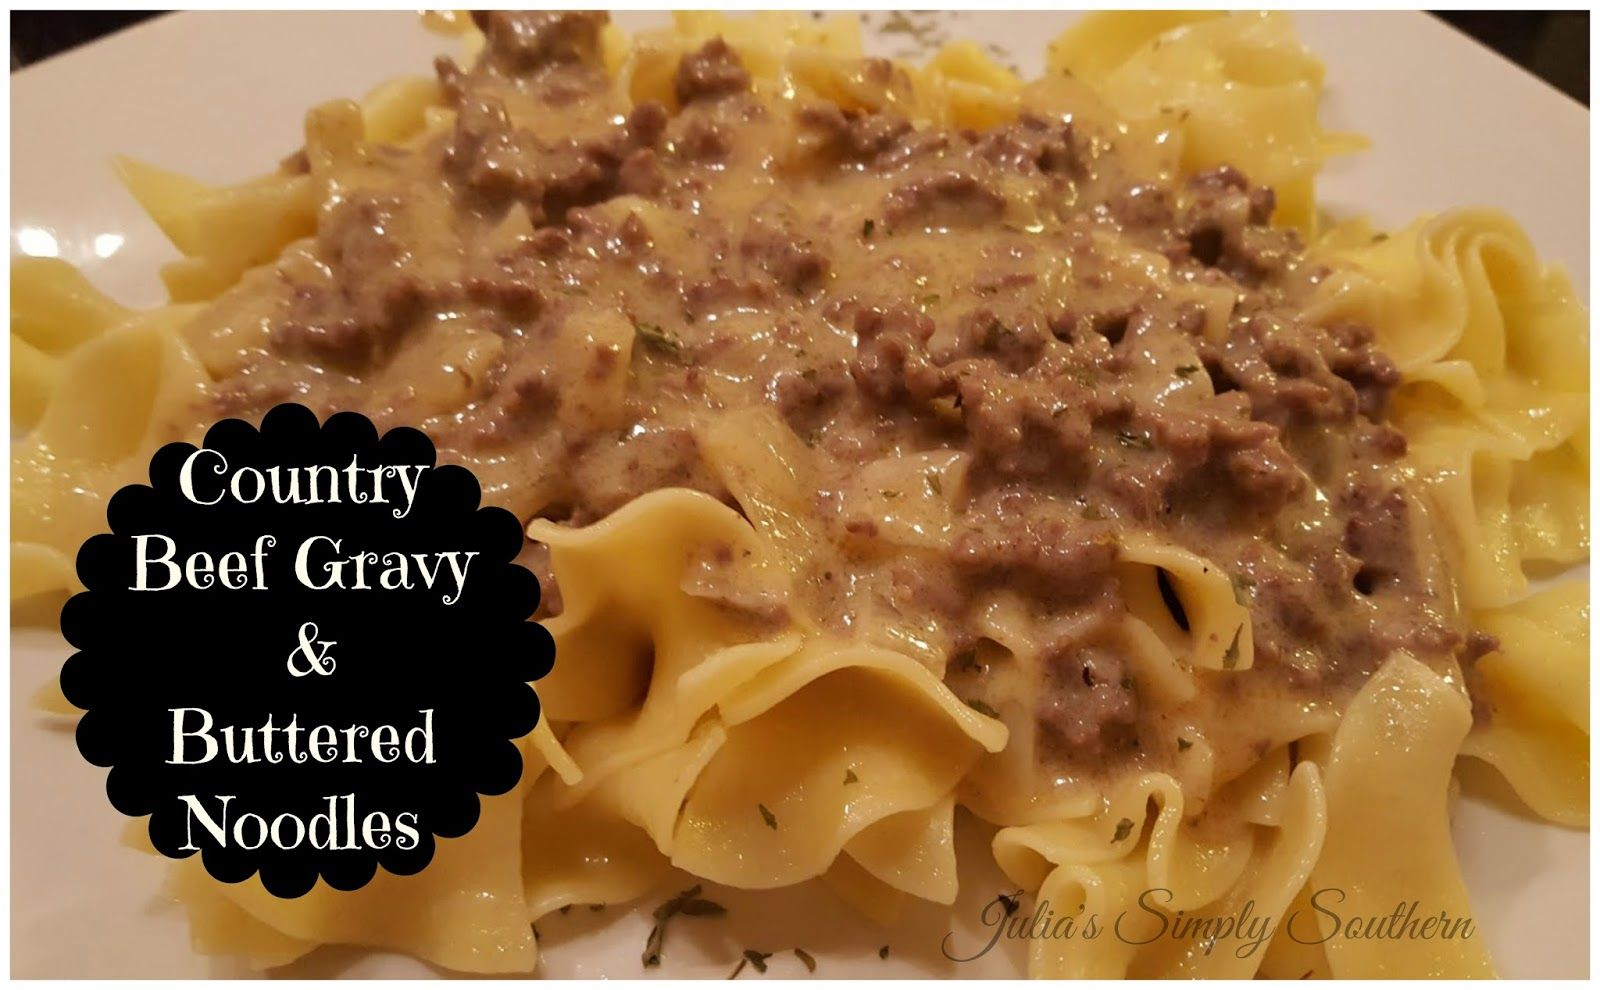 Country Beef Gravy Over Buttered Noodles Beef Gravy Hamburger Noodles Beef Southern Cooking Easy Recipe Ground Buttered Noodles Beef Gravy Pasta Dishes